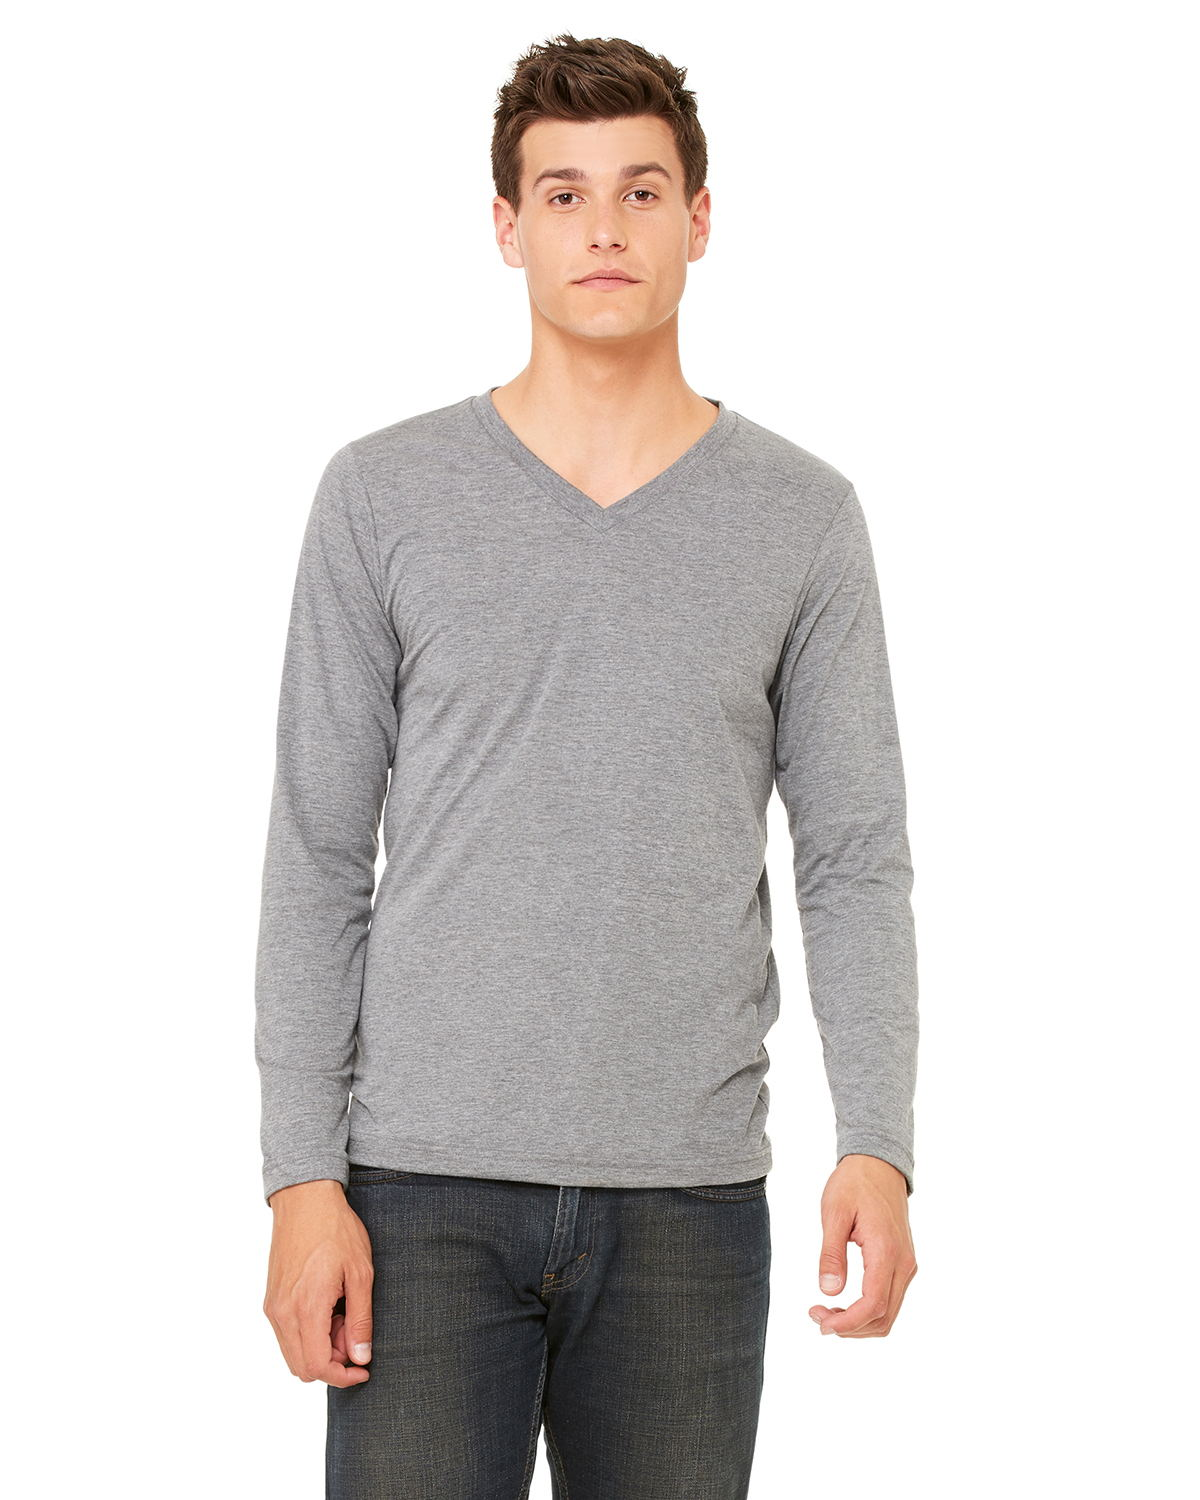 Bella 3425 -  Men's Tri-Blend Long-Sleeve V-Neck Tee